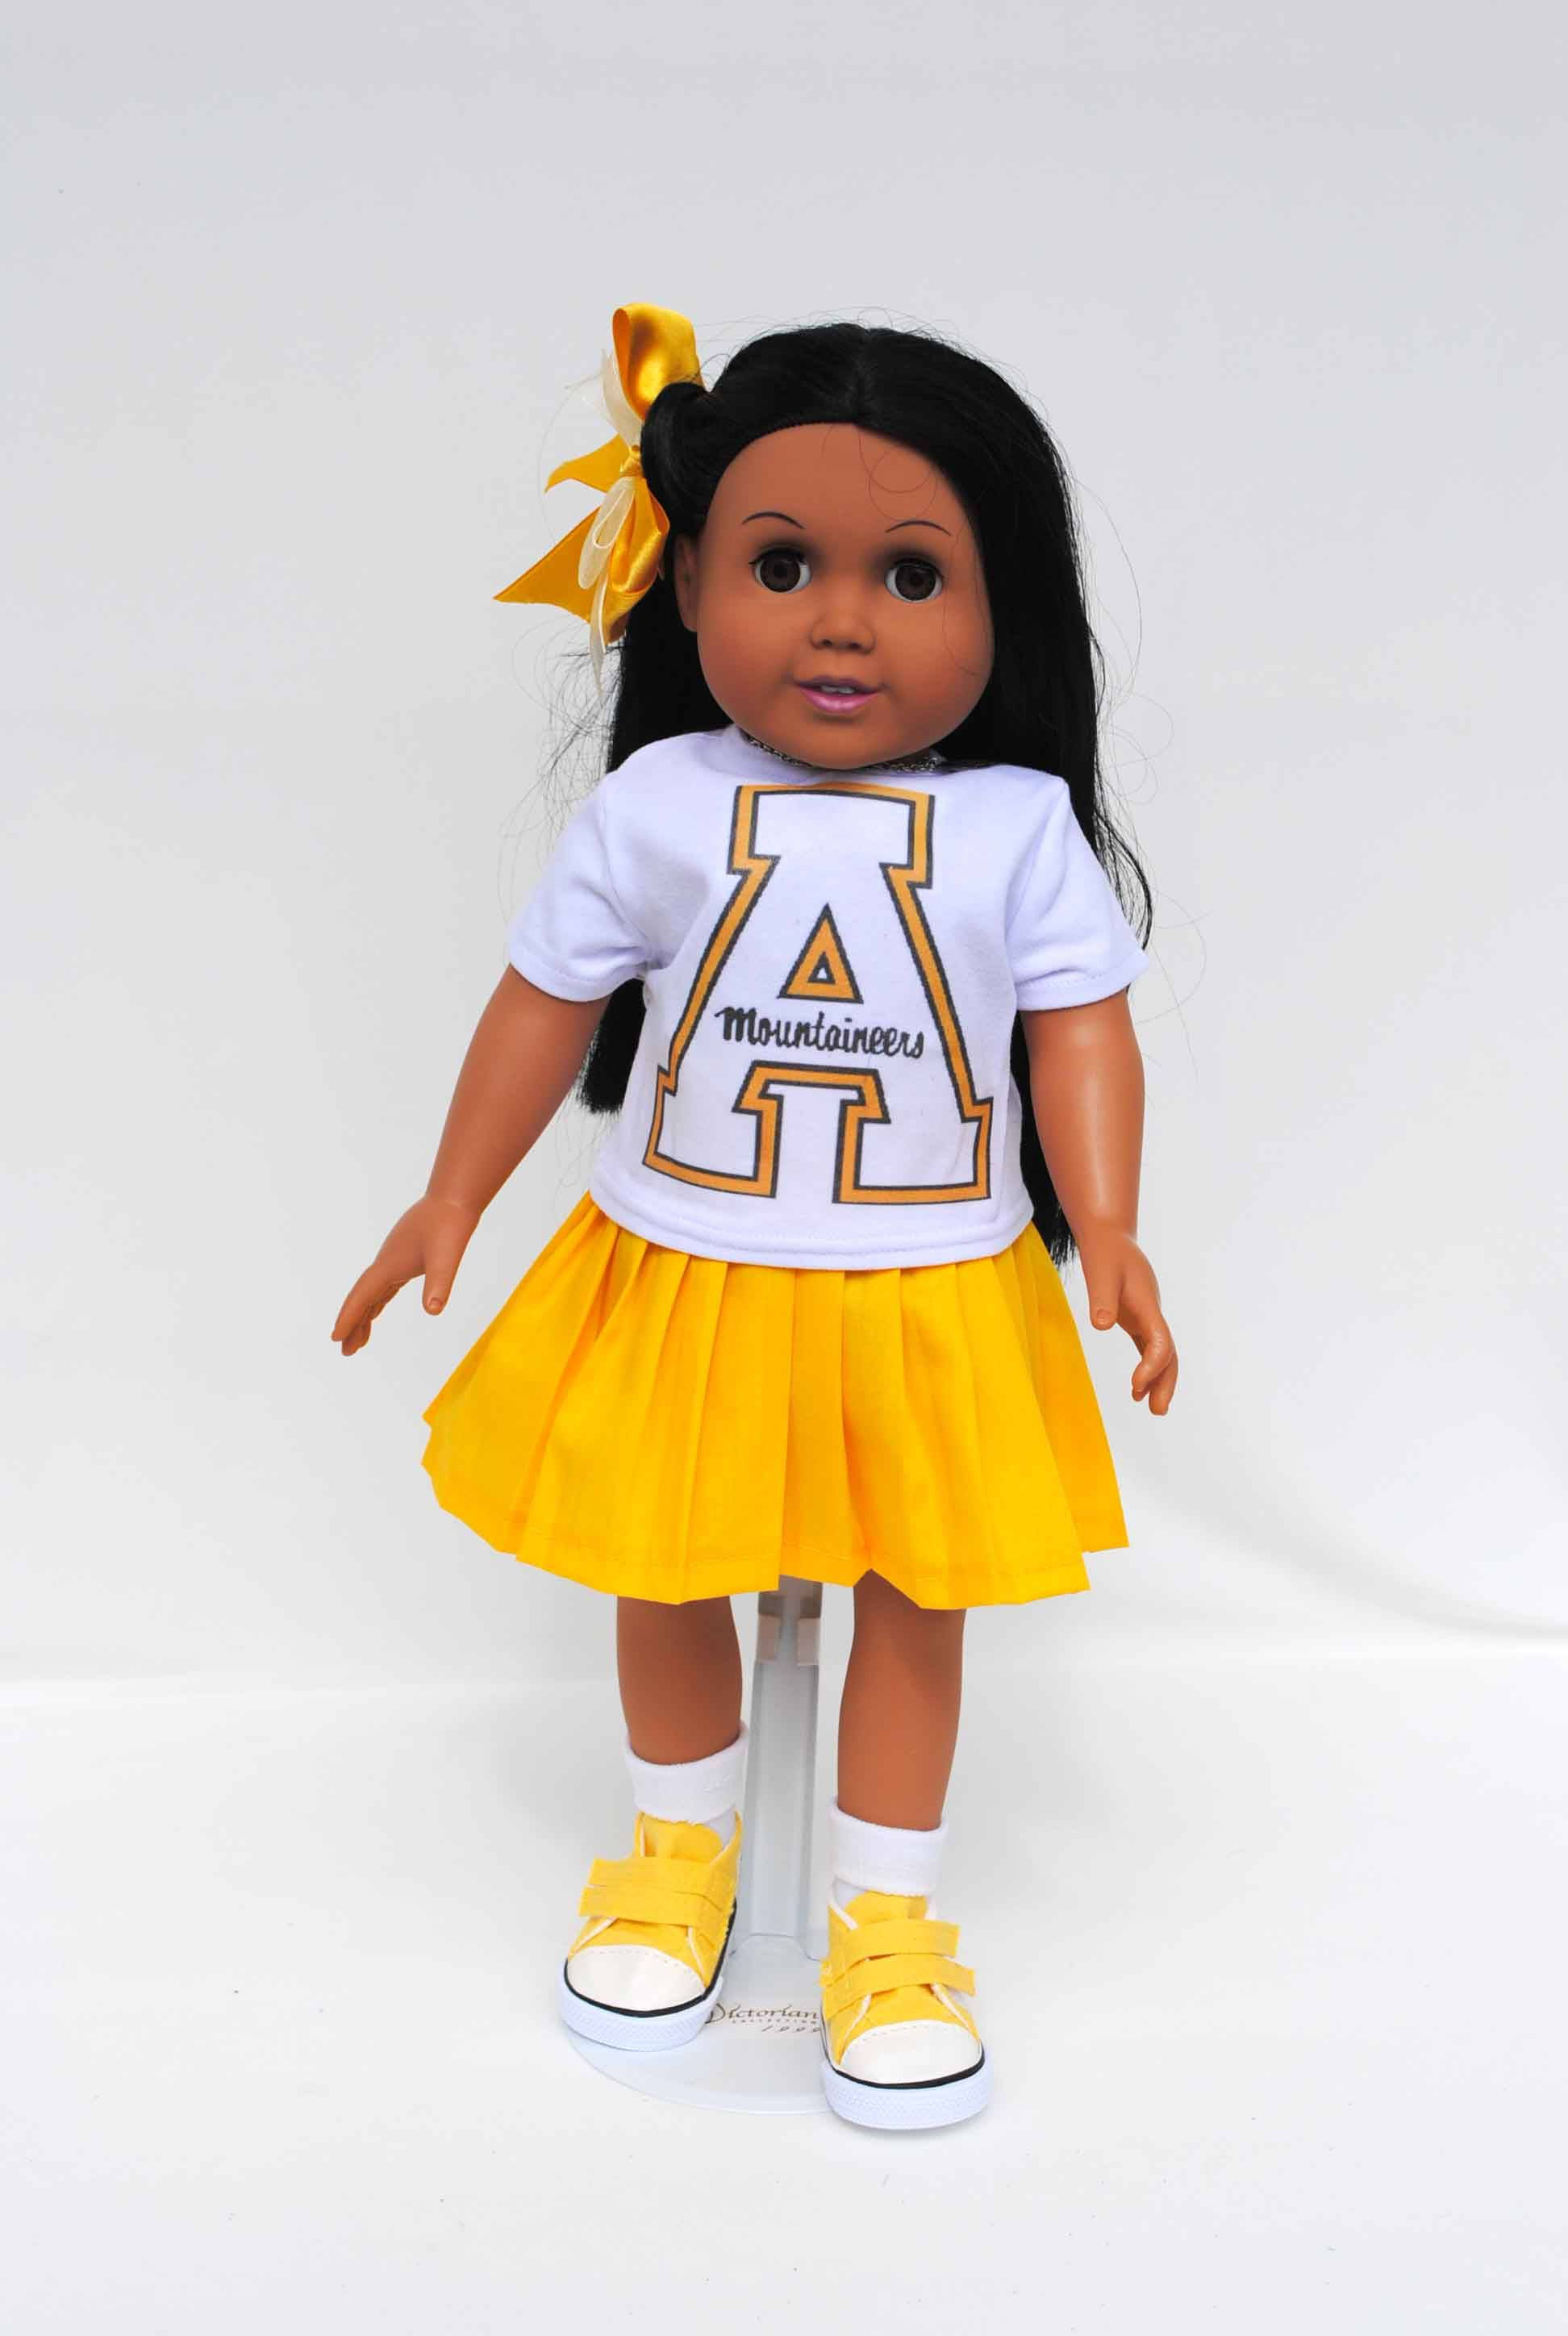 Sports Team Outfit Appalachian Cheerleader Yellow Skirt White Tshirt like American Girl is part of Yellow Clothes Christmas Gifts - Appalachian Cheerleader sports team outfit costume for 18 inch American Made Girl Doll, Yellow Skirt, White Tshirt, Sneakers, Journey Girl, My Life, Our Generation Yellow Pleated skirt White Tshirt shoes Panties The item in the picture will be the item you receive  Doll clothes were sewn in a pet and a smoke free environment  The doll and hair accessories (unless listed) is not included in this listing  Doll Clothes Designs Co  is no way affiliated with American Girl or Mattel Inc  ® If you have any question please feel free to contact me at any time  Thanks so much for looking and I hope you find something you love  Hand wash and line dry